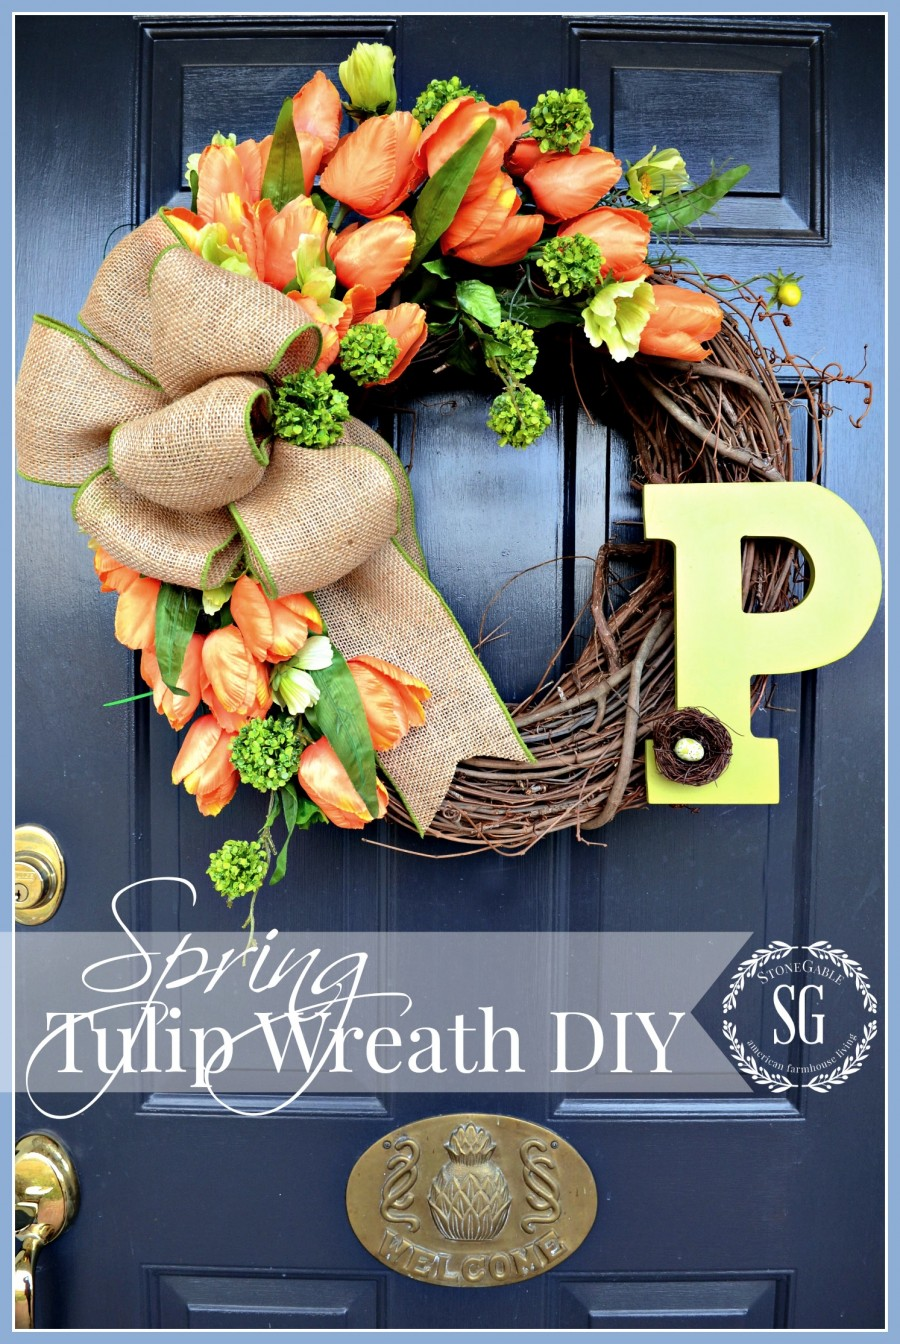 SPRING-TULIP-WREATH-DIY-Dress-your-door-this-year-with-a-WOW-factor-wreath-stonegableblog.com_